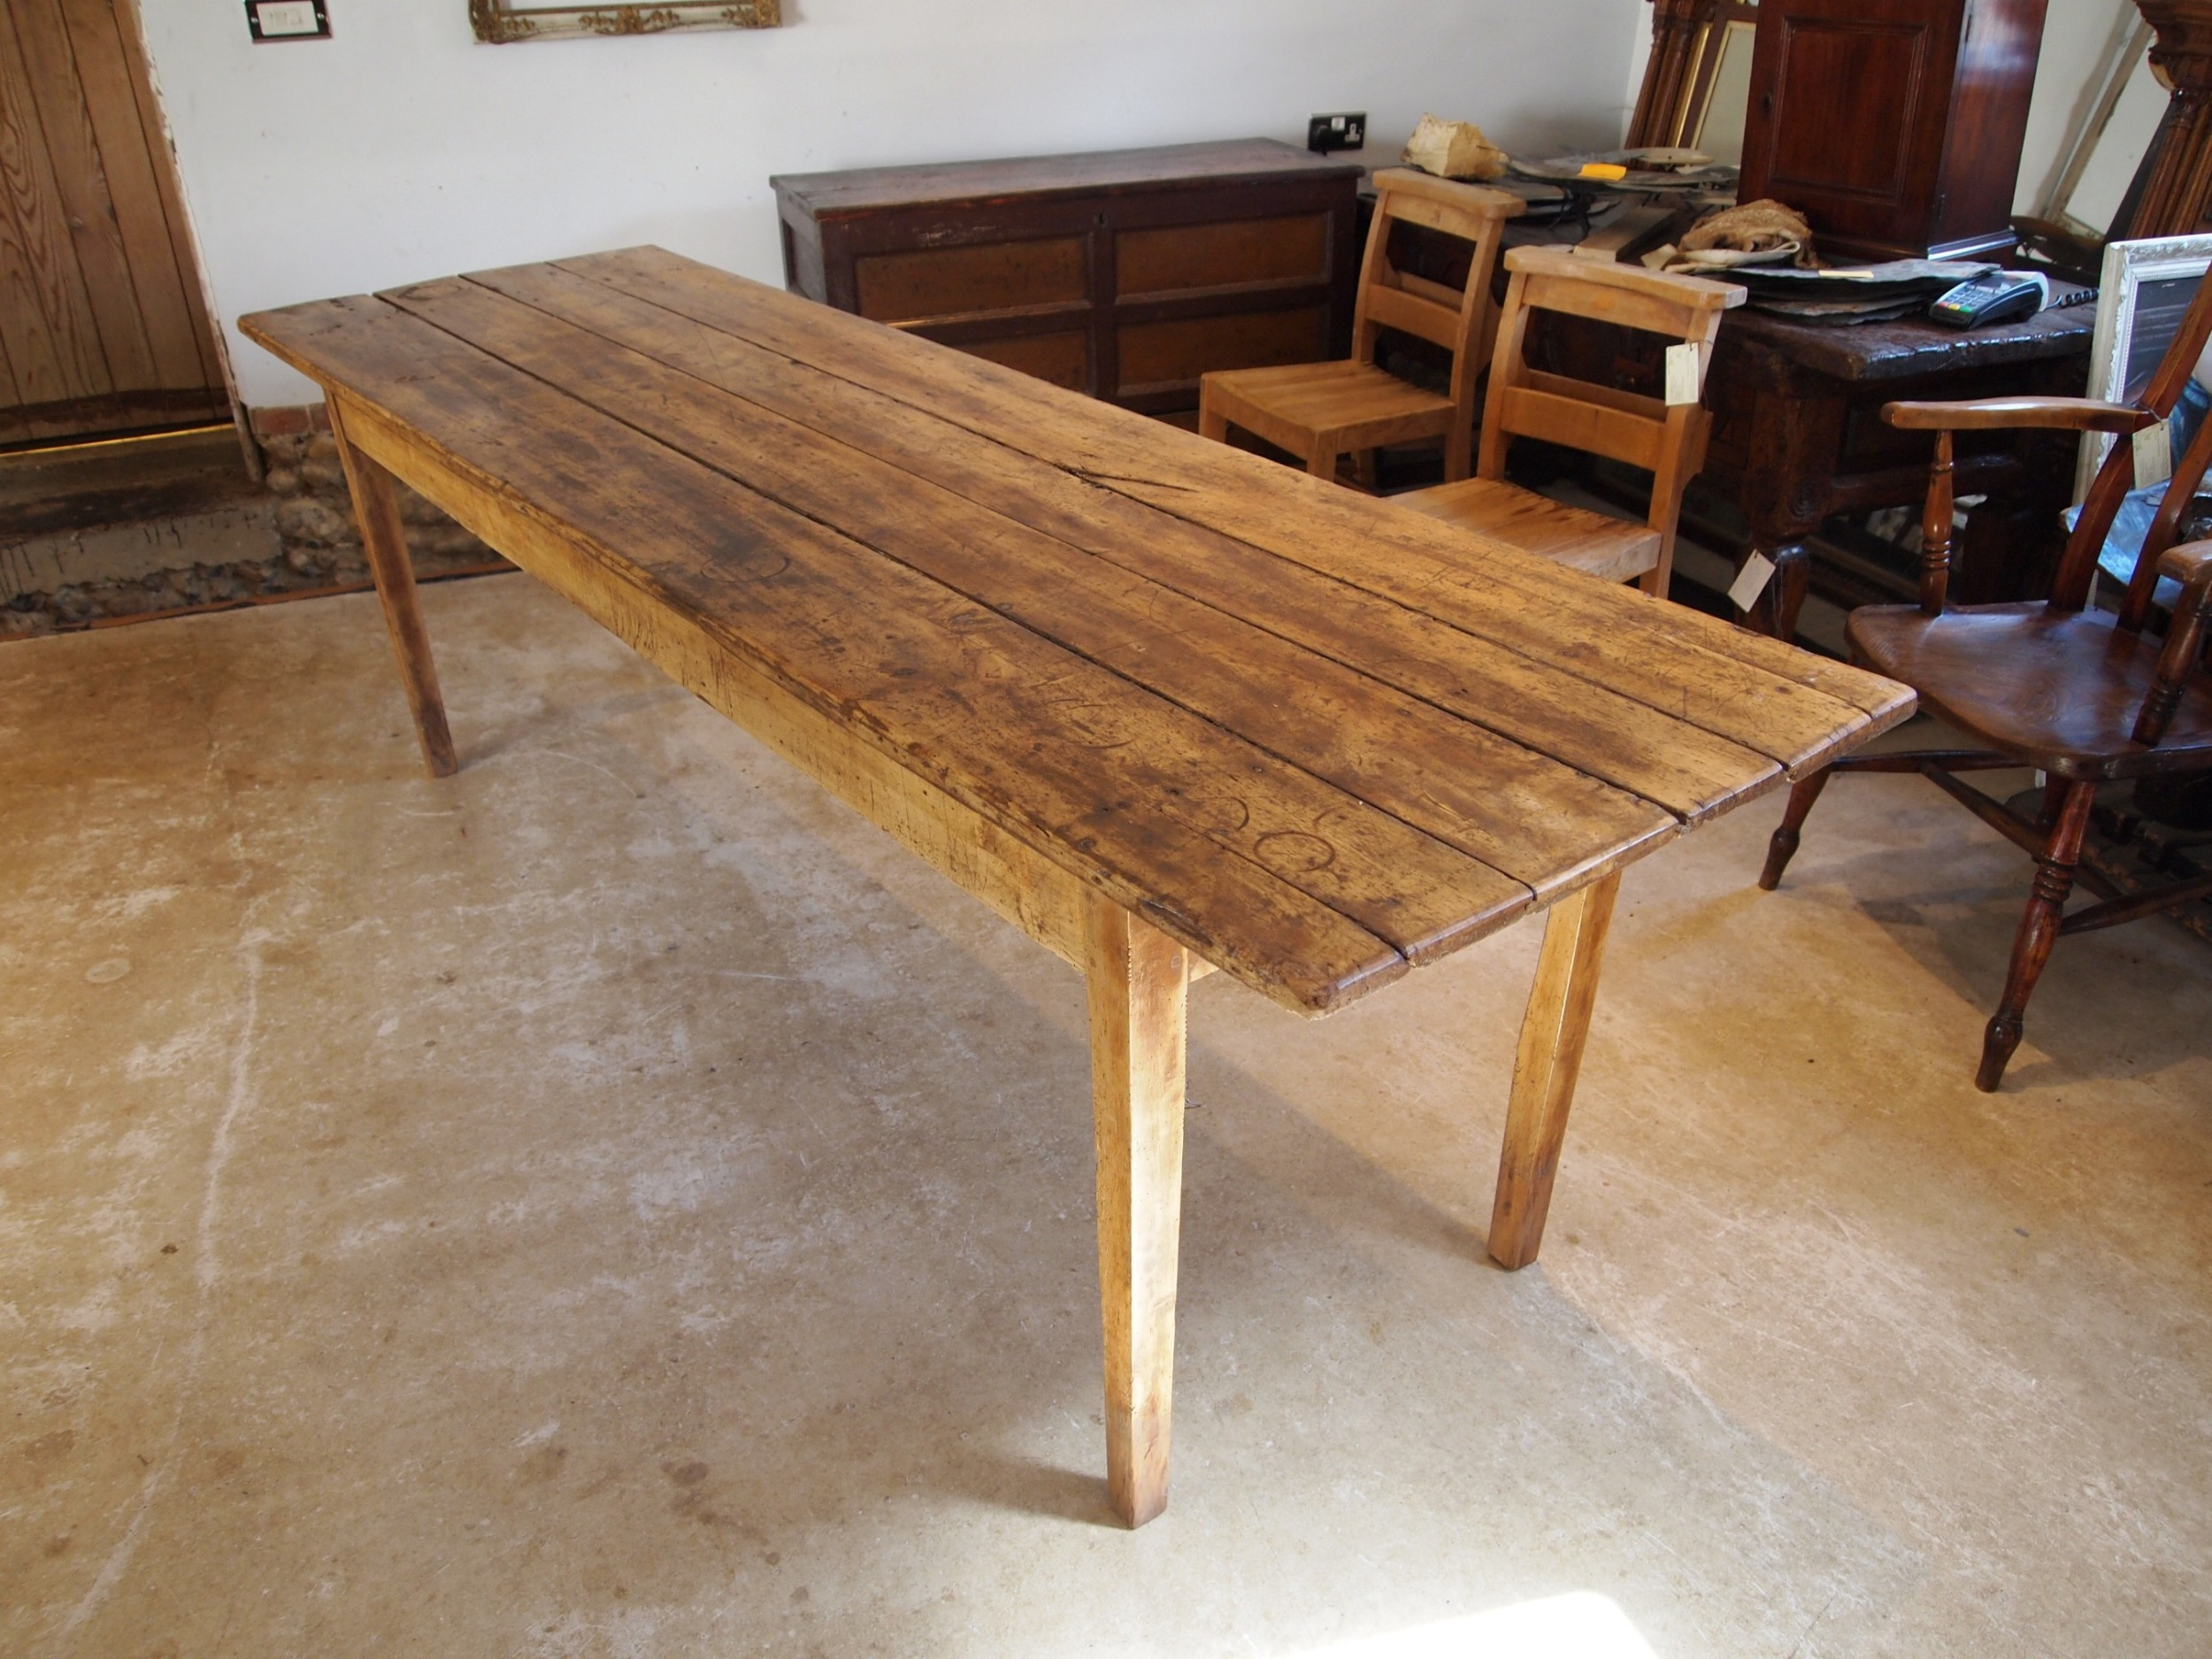 table refectory dining farmhouse french apple c1820